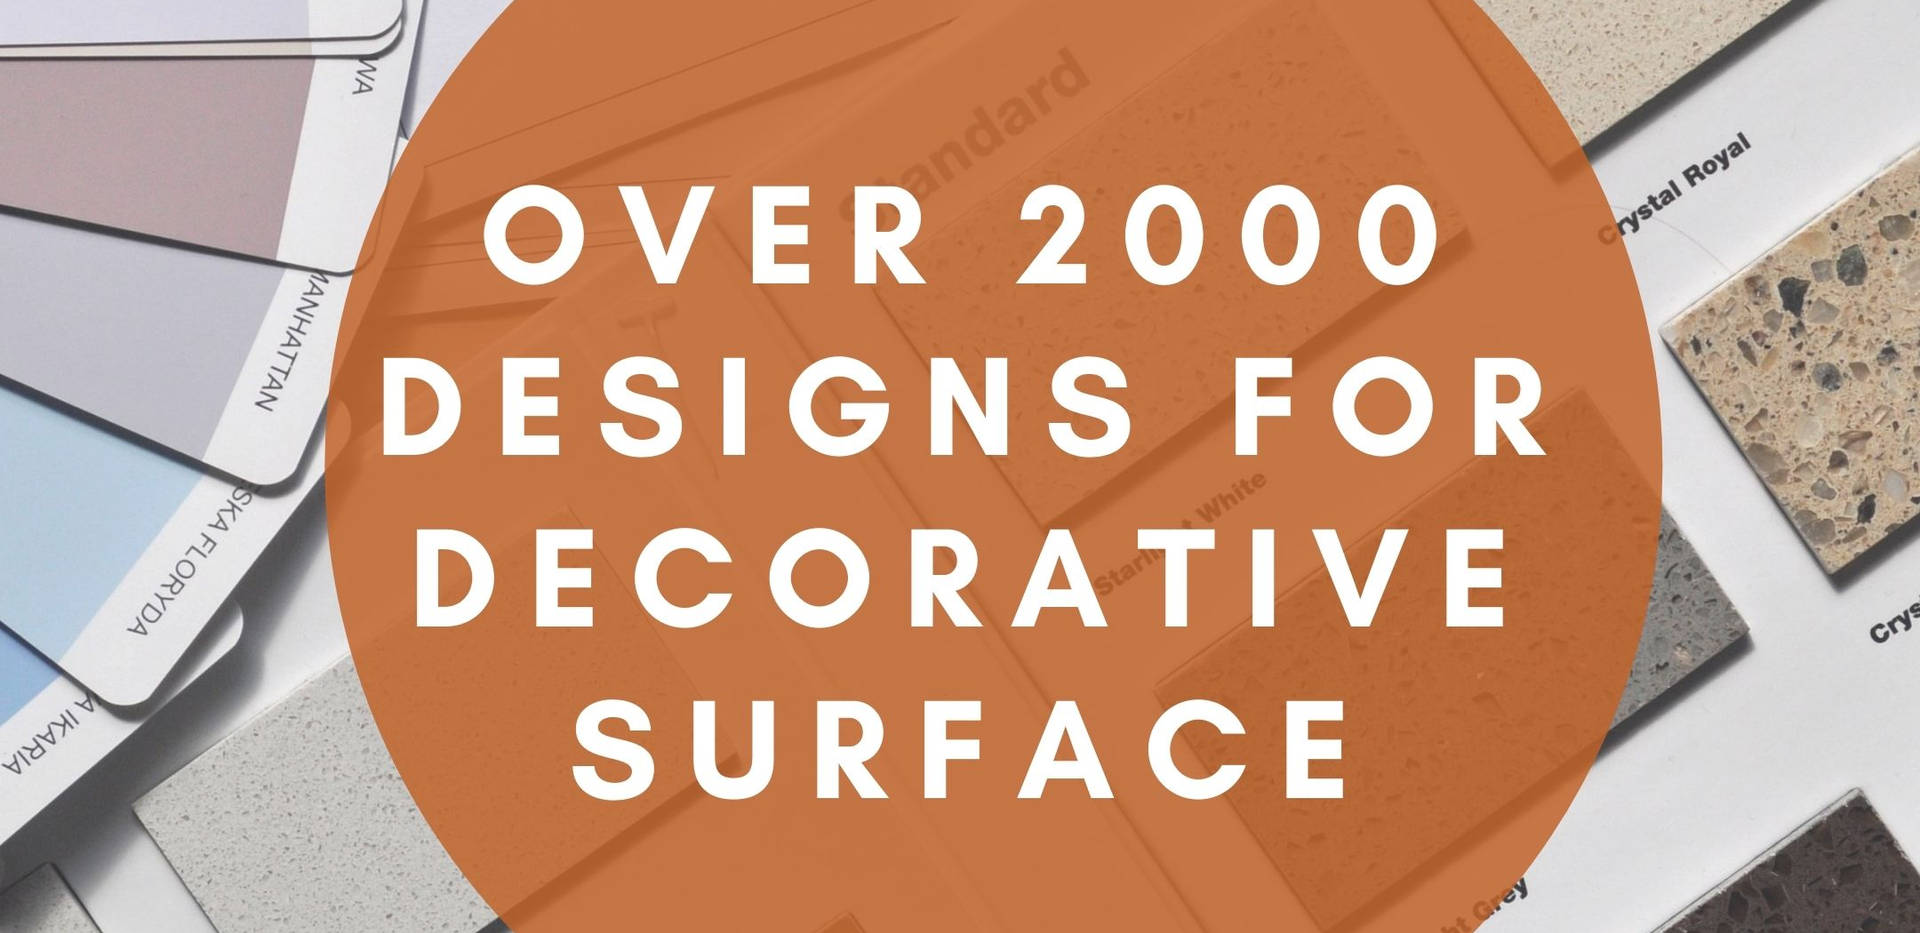 OVER 2000 DESIGNS FOR DECORATIVE SURFACE